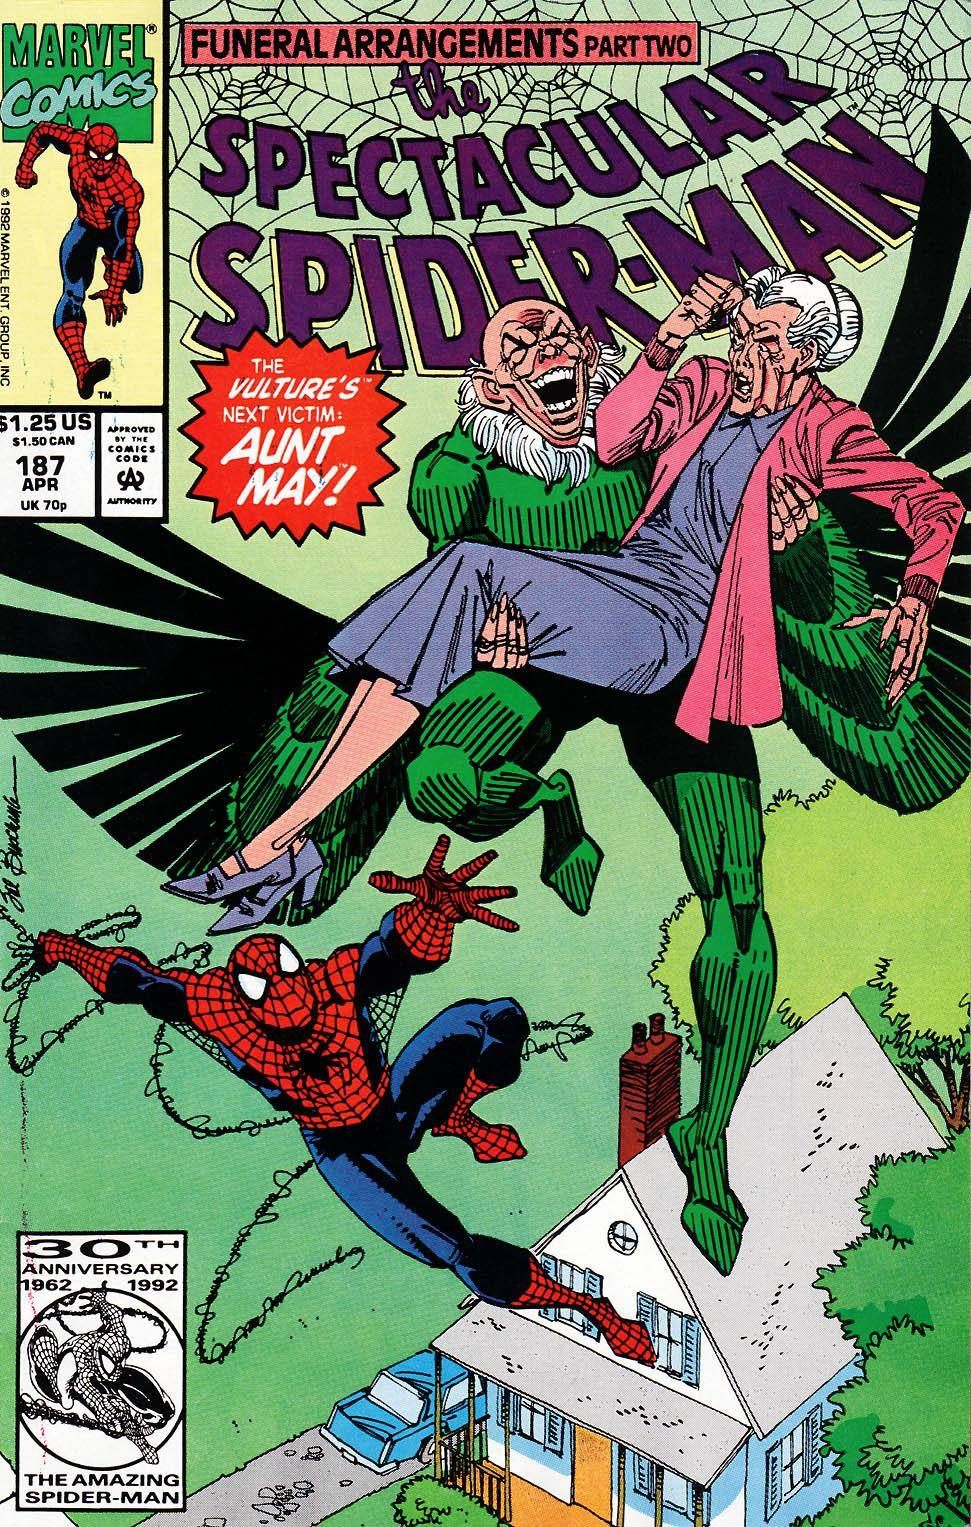 Spider-Man [3861] Peter Parker - The Spectacular Spider-Man v1 187